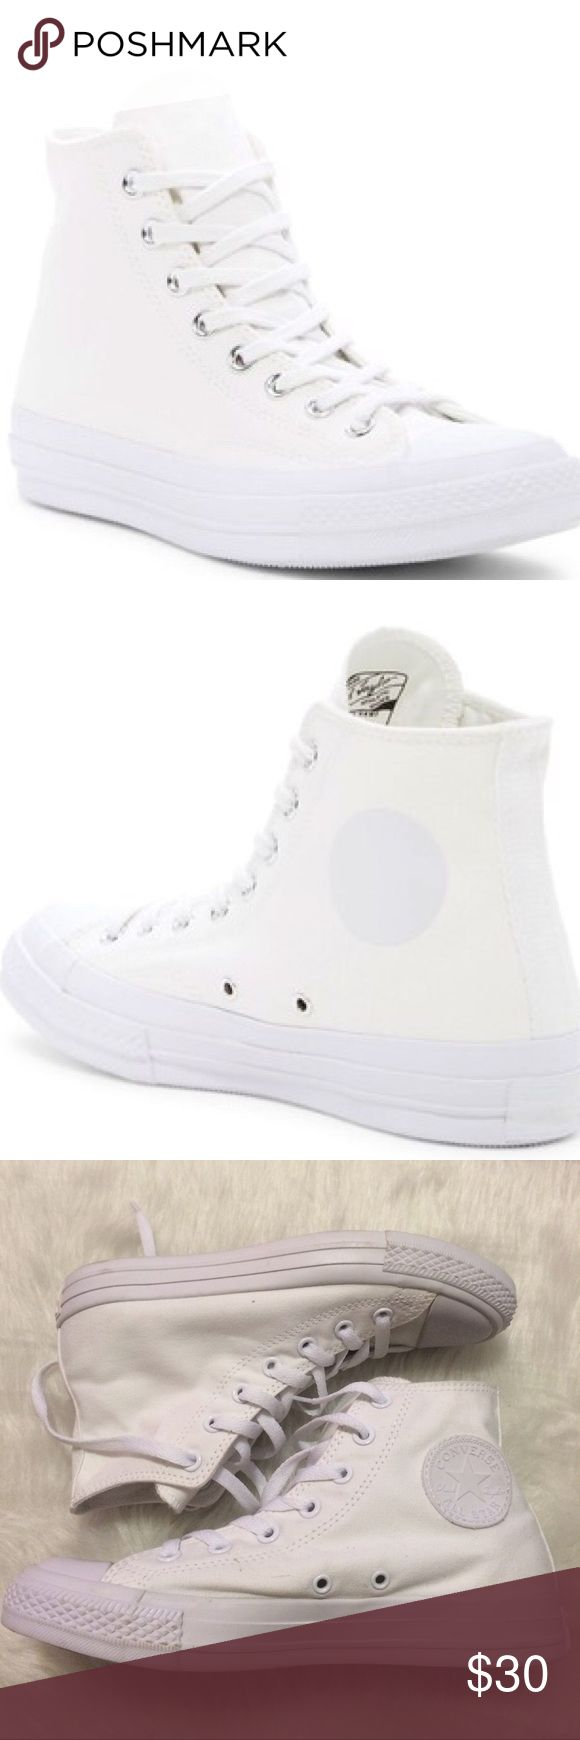 🎉1 HOUR SALE! Converse Mens size 10 all white No box Converse Shoes Sneakers